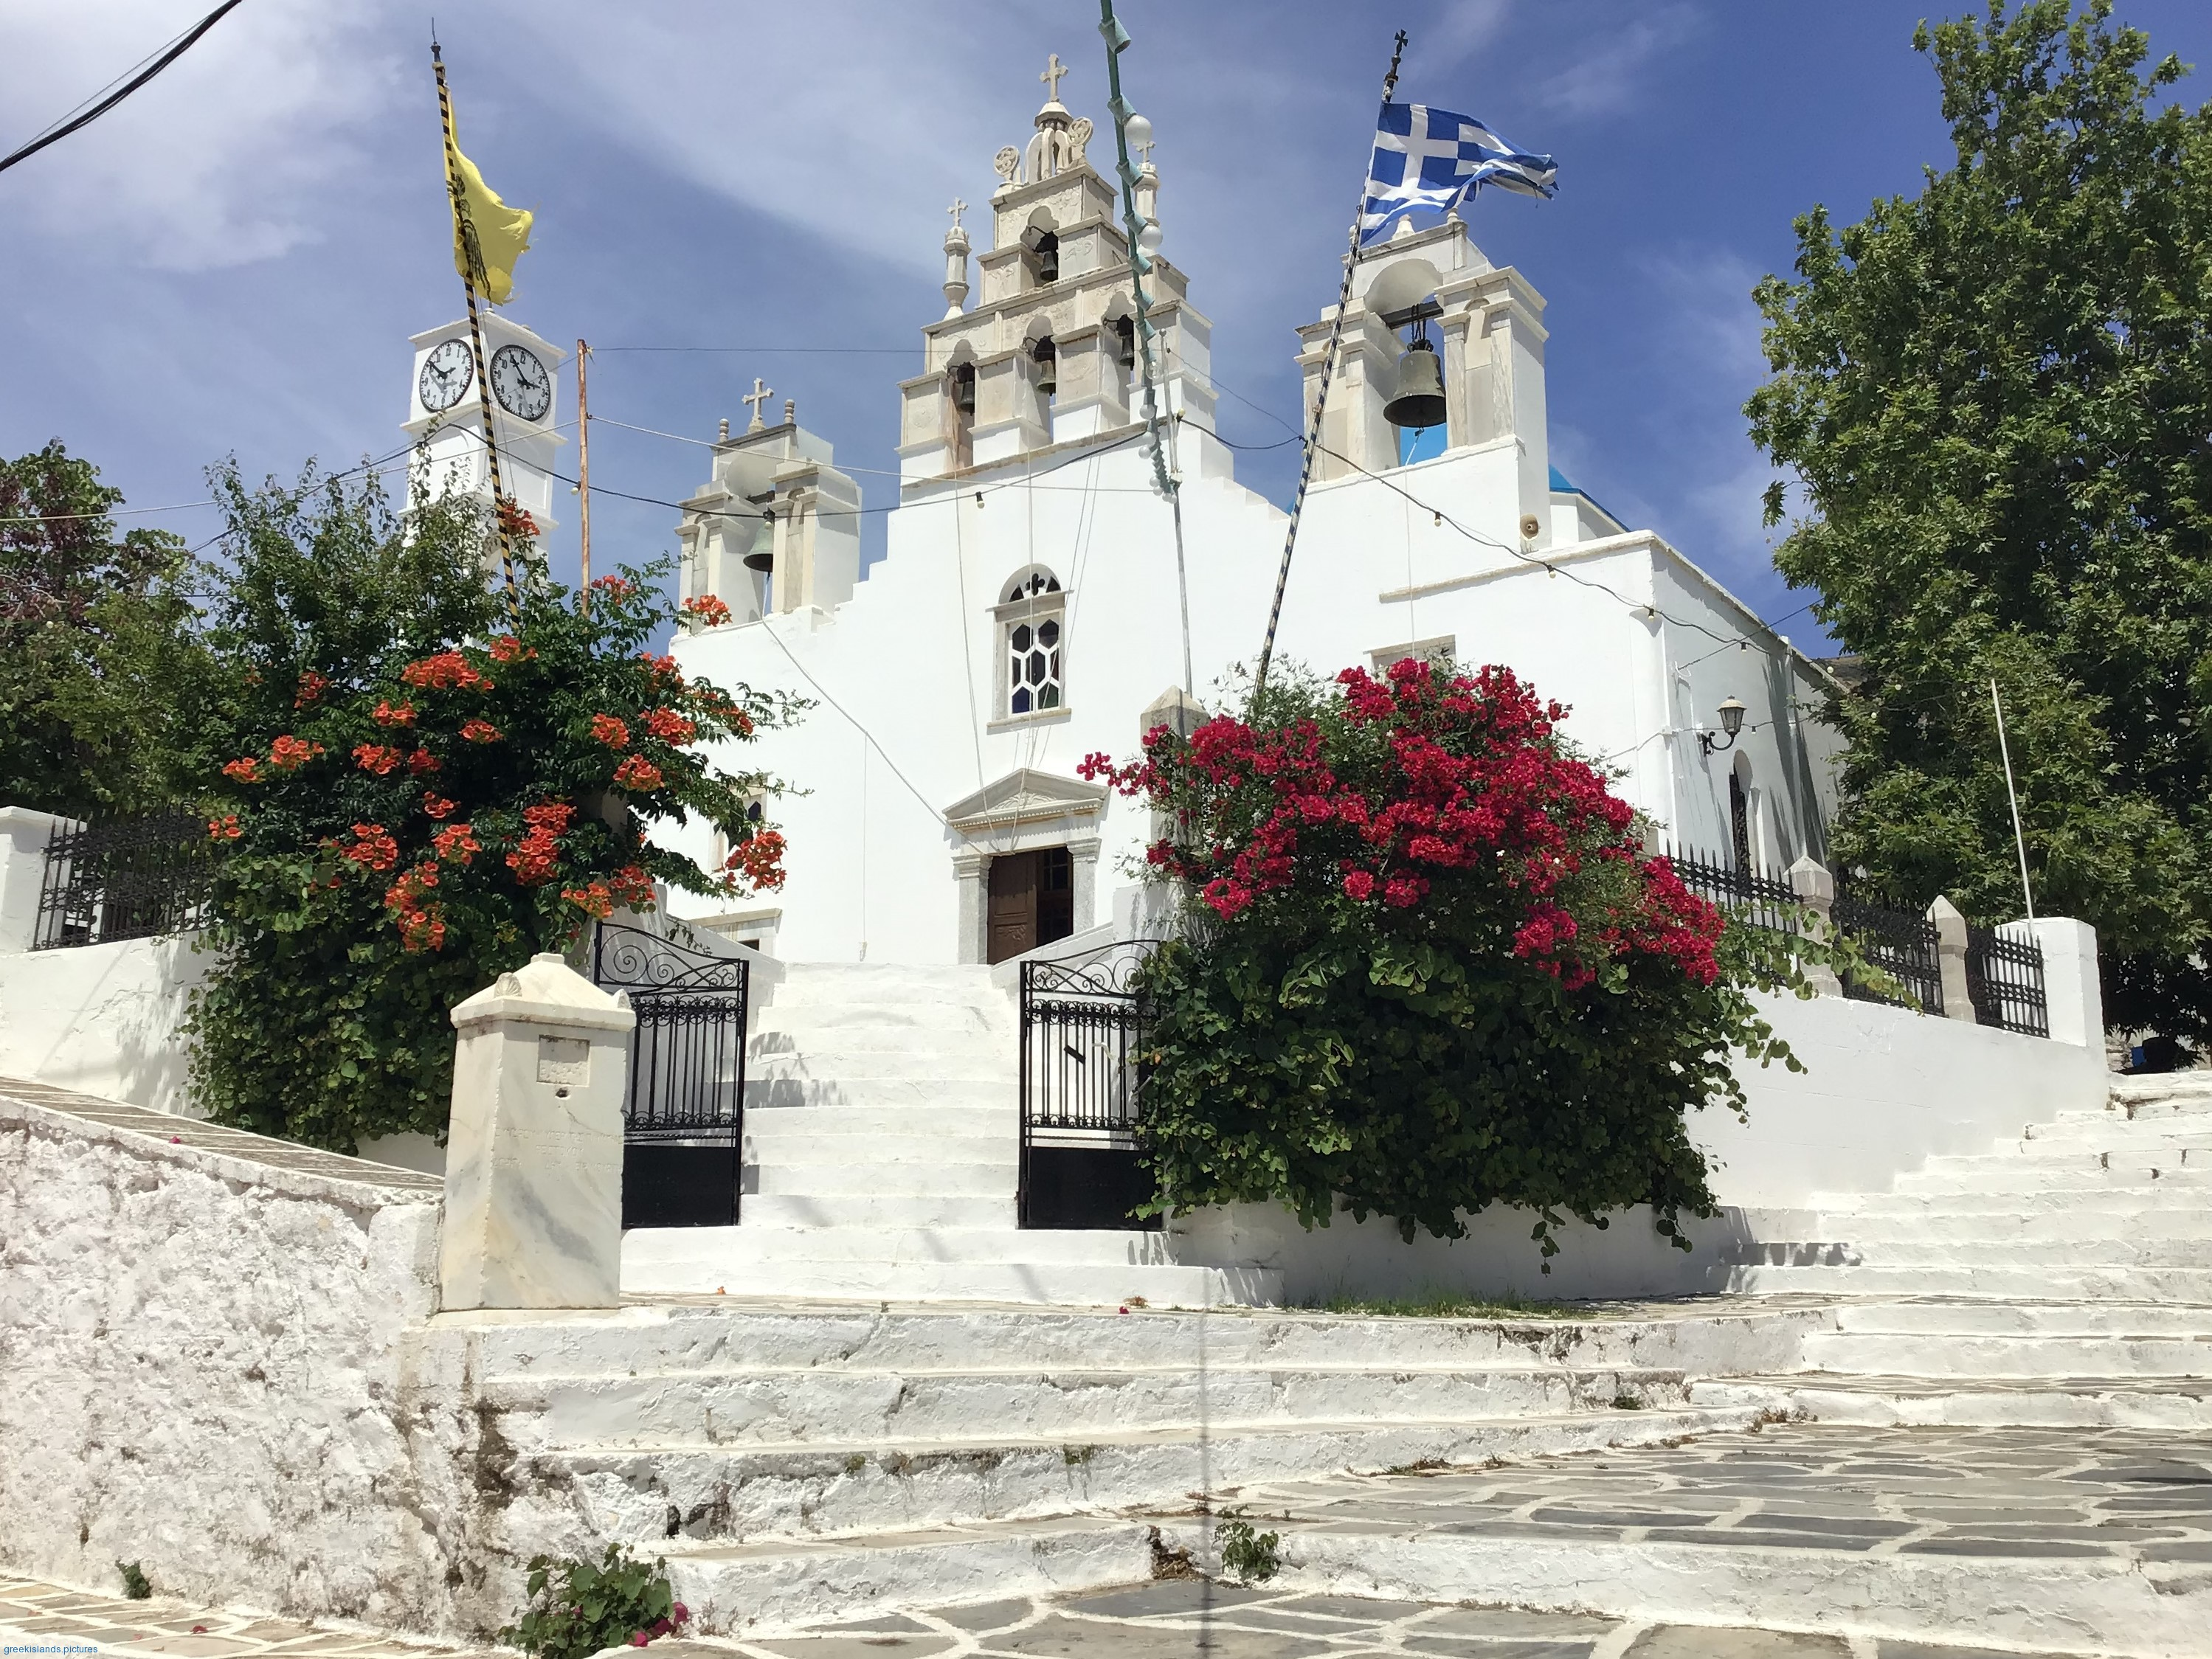 The church of Panagia Filotitisa, dedicated to the Assumption of the Virgin Mary, a basilica built in 1718 in the place of an old Byzantine temple.